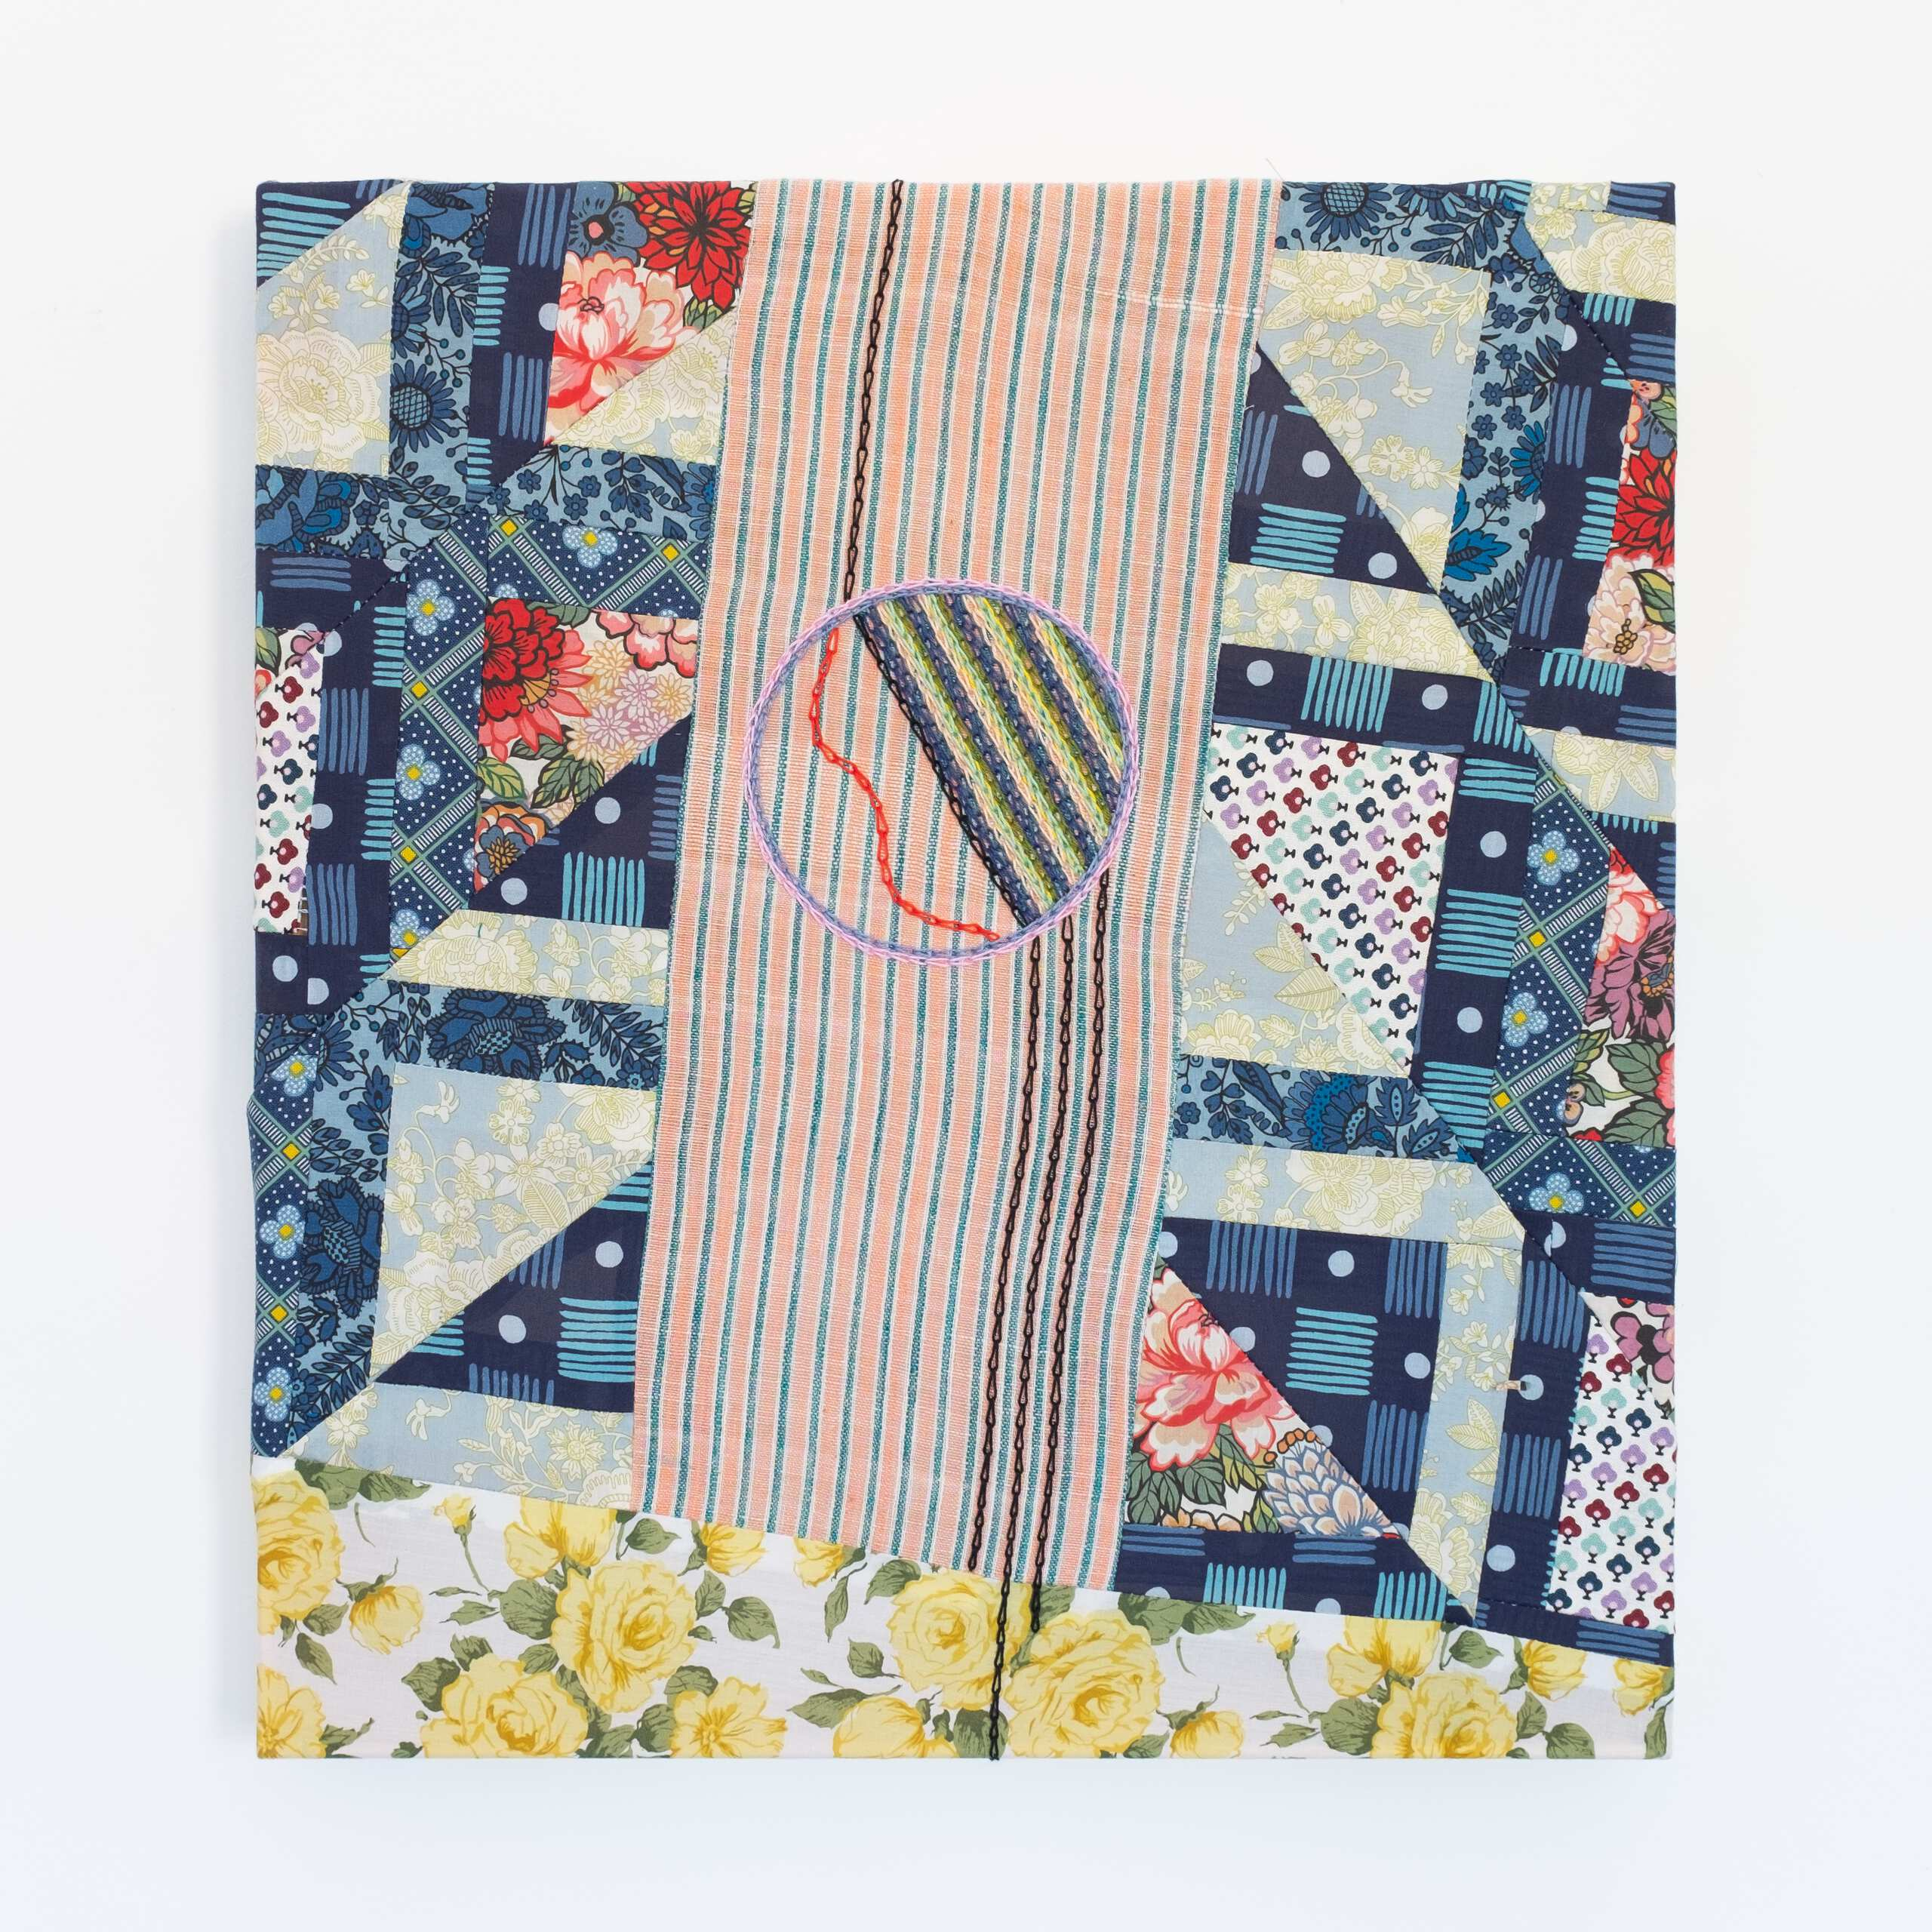 Quilted Composition (awkward painting 1), Sewn cotton fabric, hand-embroidered cotton thread, 2020